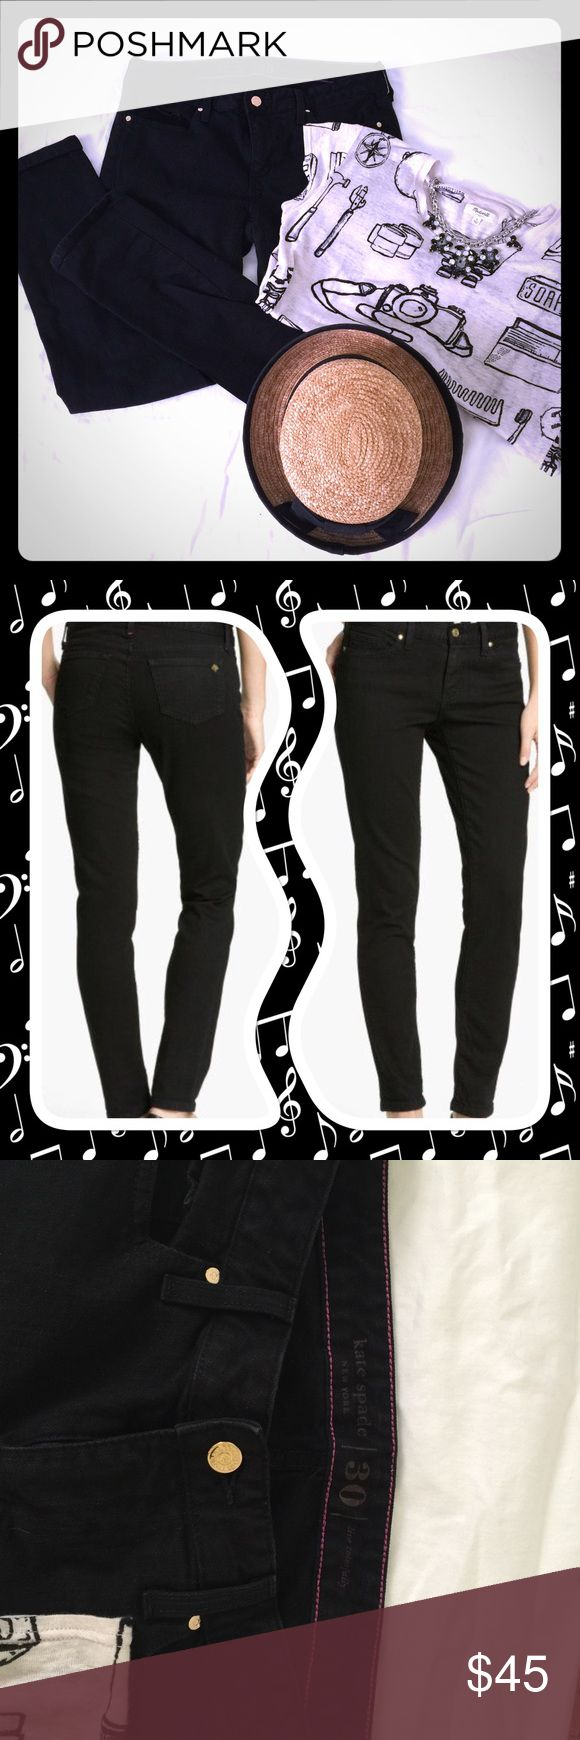 Kate spade black denim jeans w/gold button accents Great fitting jeans with just enough thickness & stretch to flatter your curves! Kate Spade Jeans Straight Leg